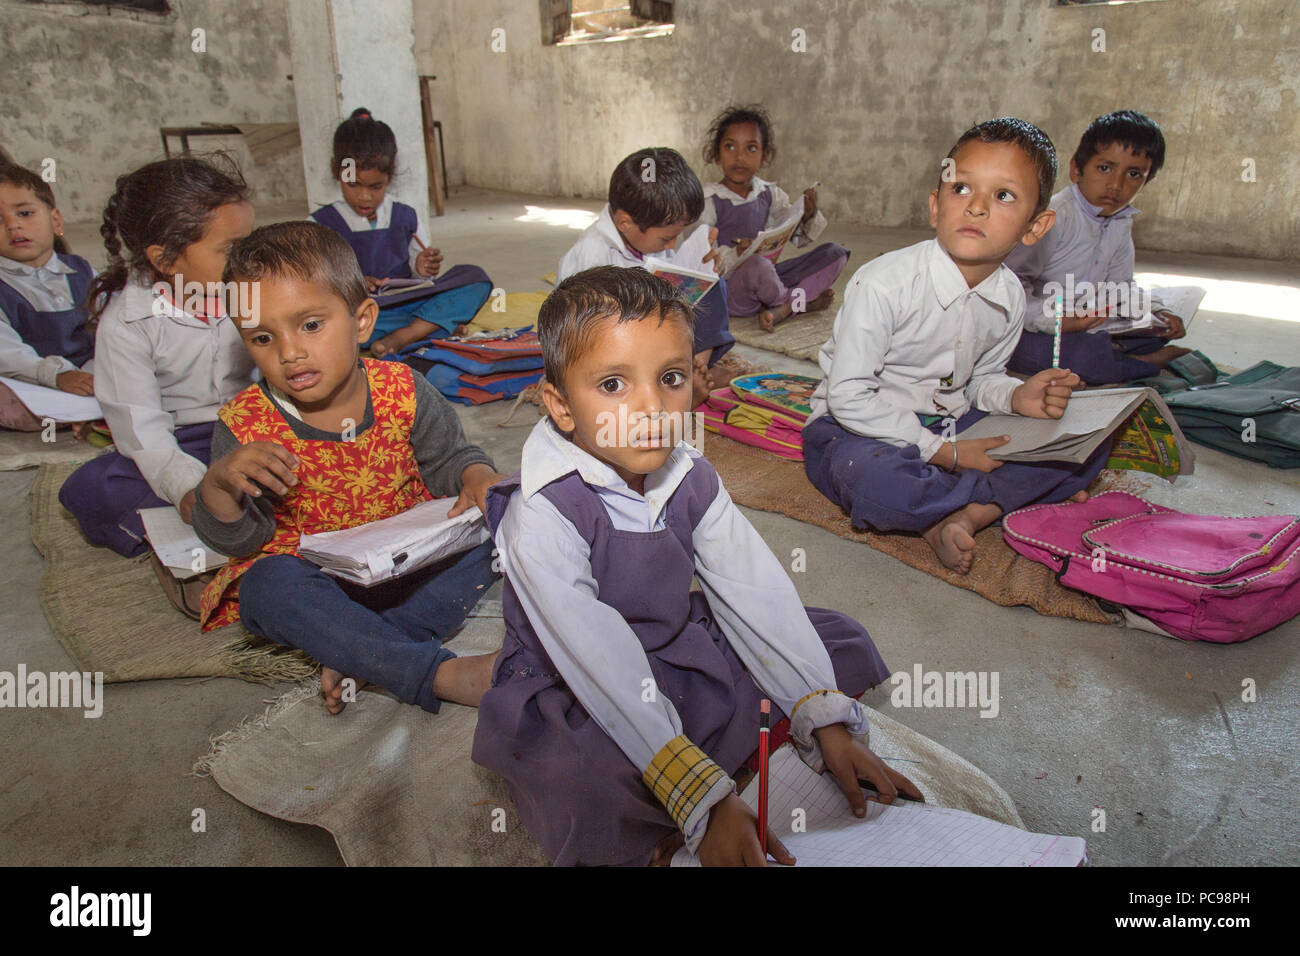 Indian Rural school kids learning from books in the classroom. - Stock Image